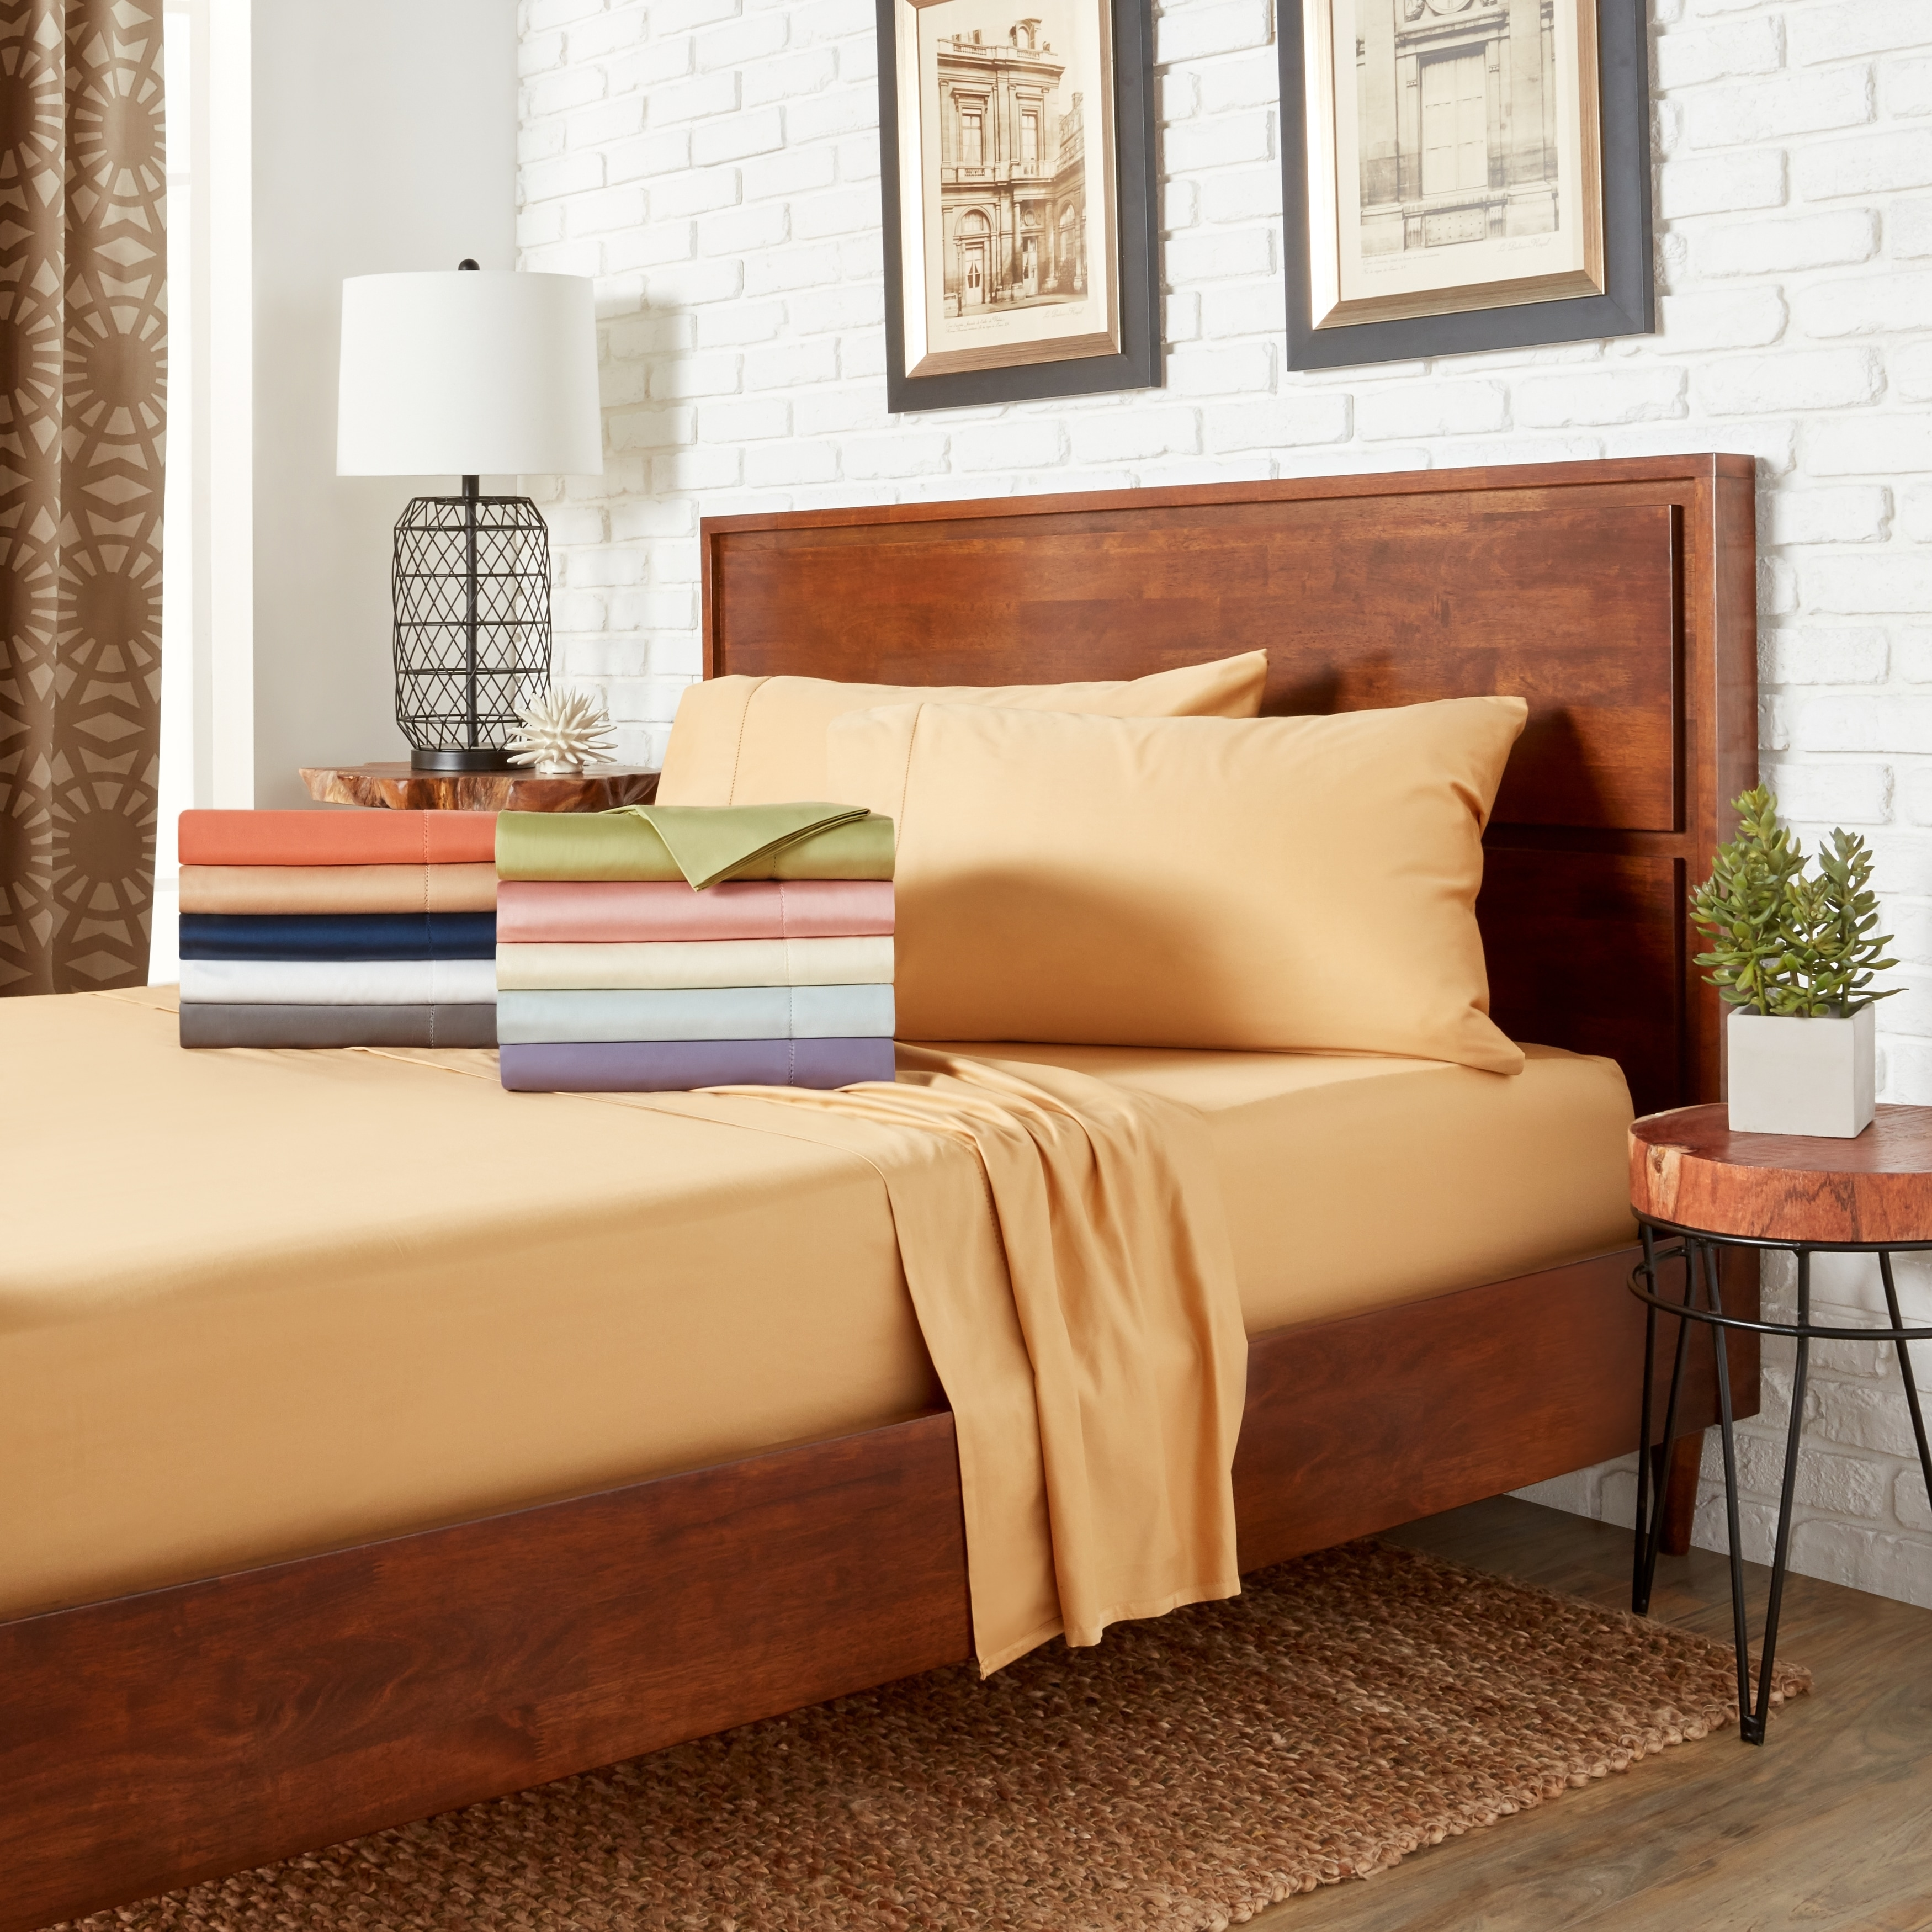 Hemsch 400 Thread Count Cotton Sa Weave Solid Color Sheet Set On Free Shipping Orders Over 45 3304448